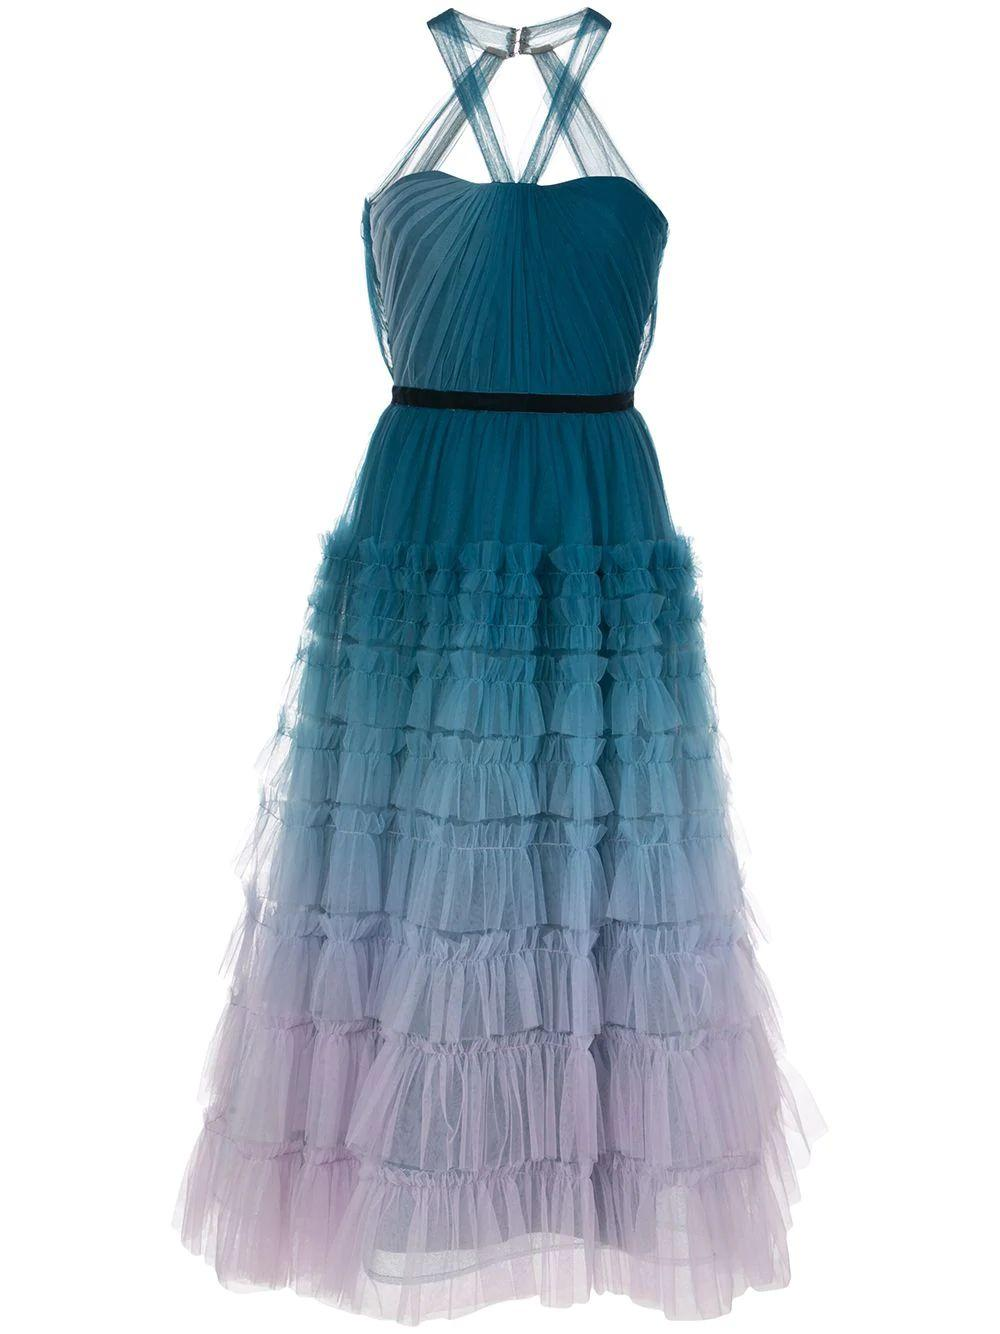 Sleeveless Ombre Textured Tulle Gown Item # N37M1164